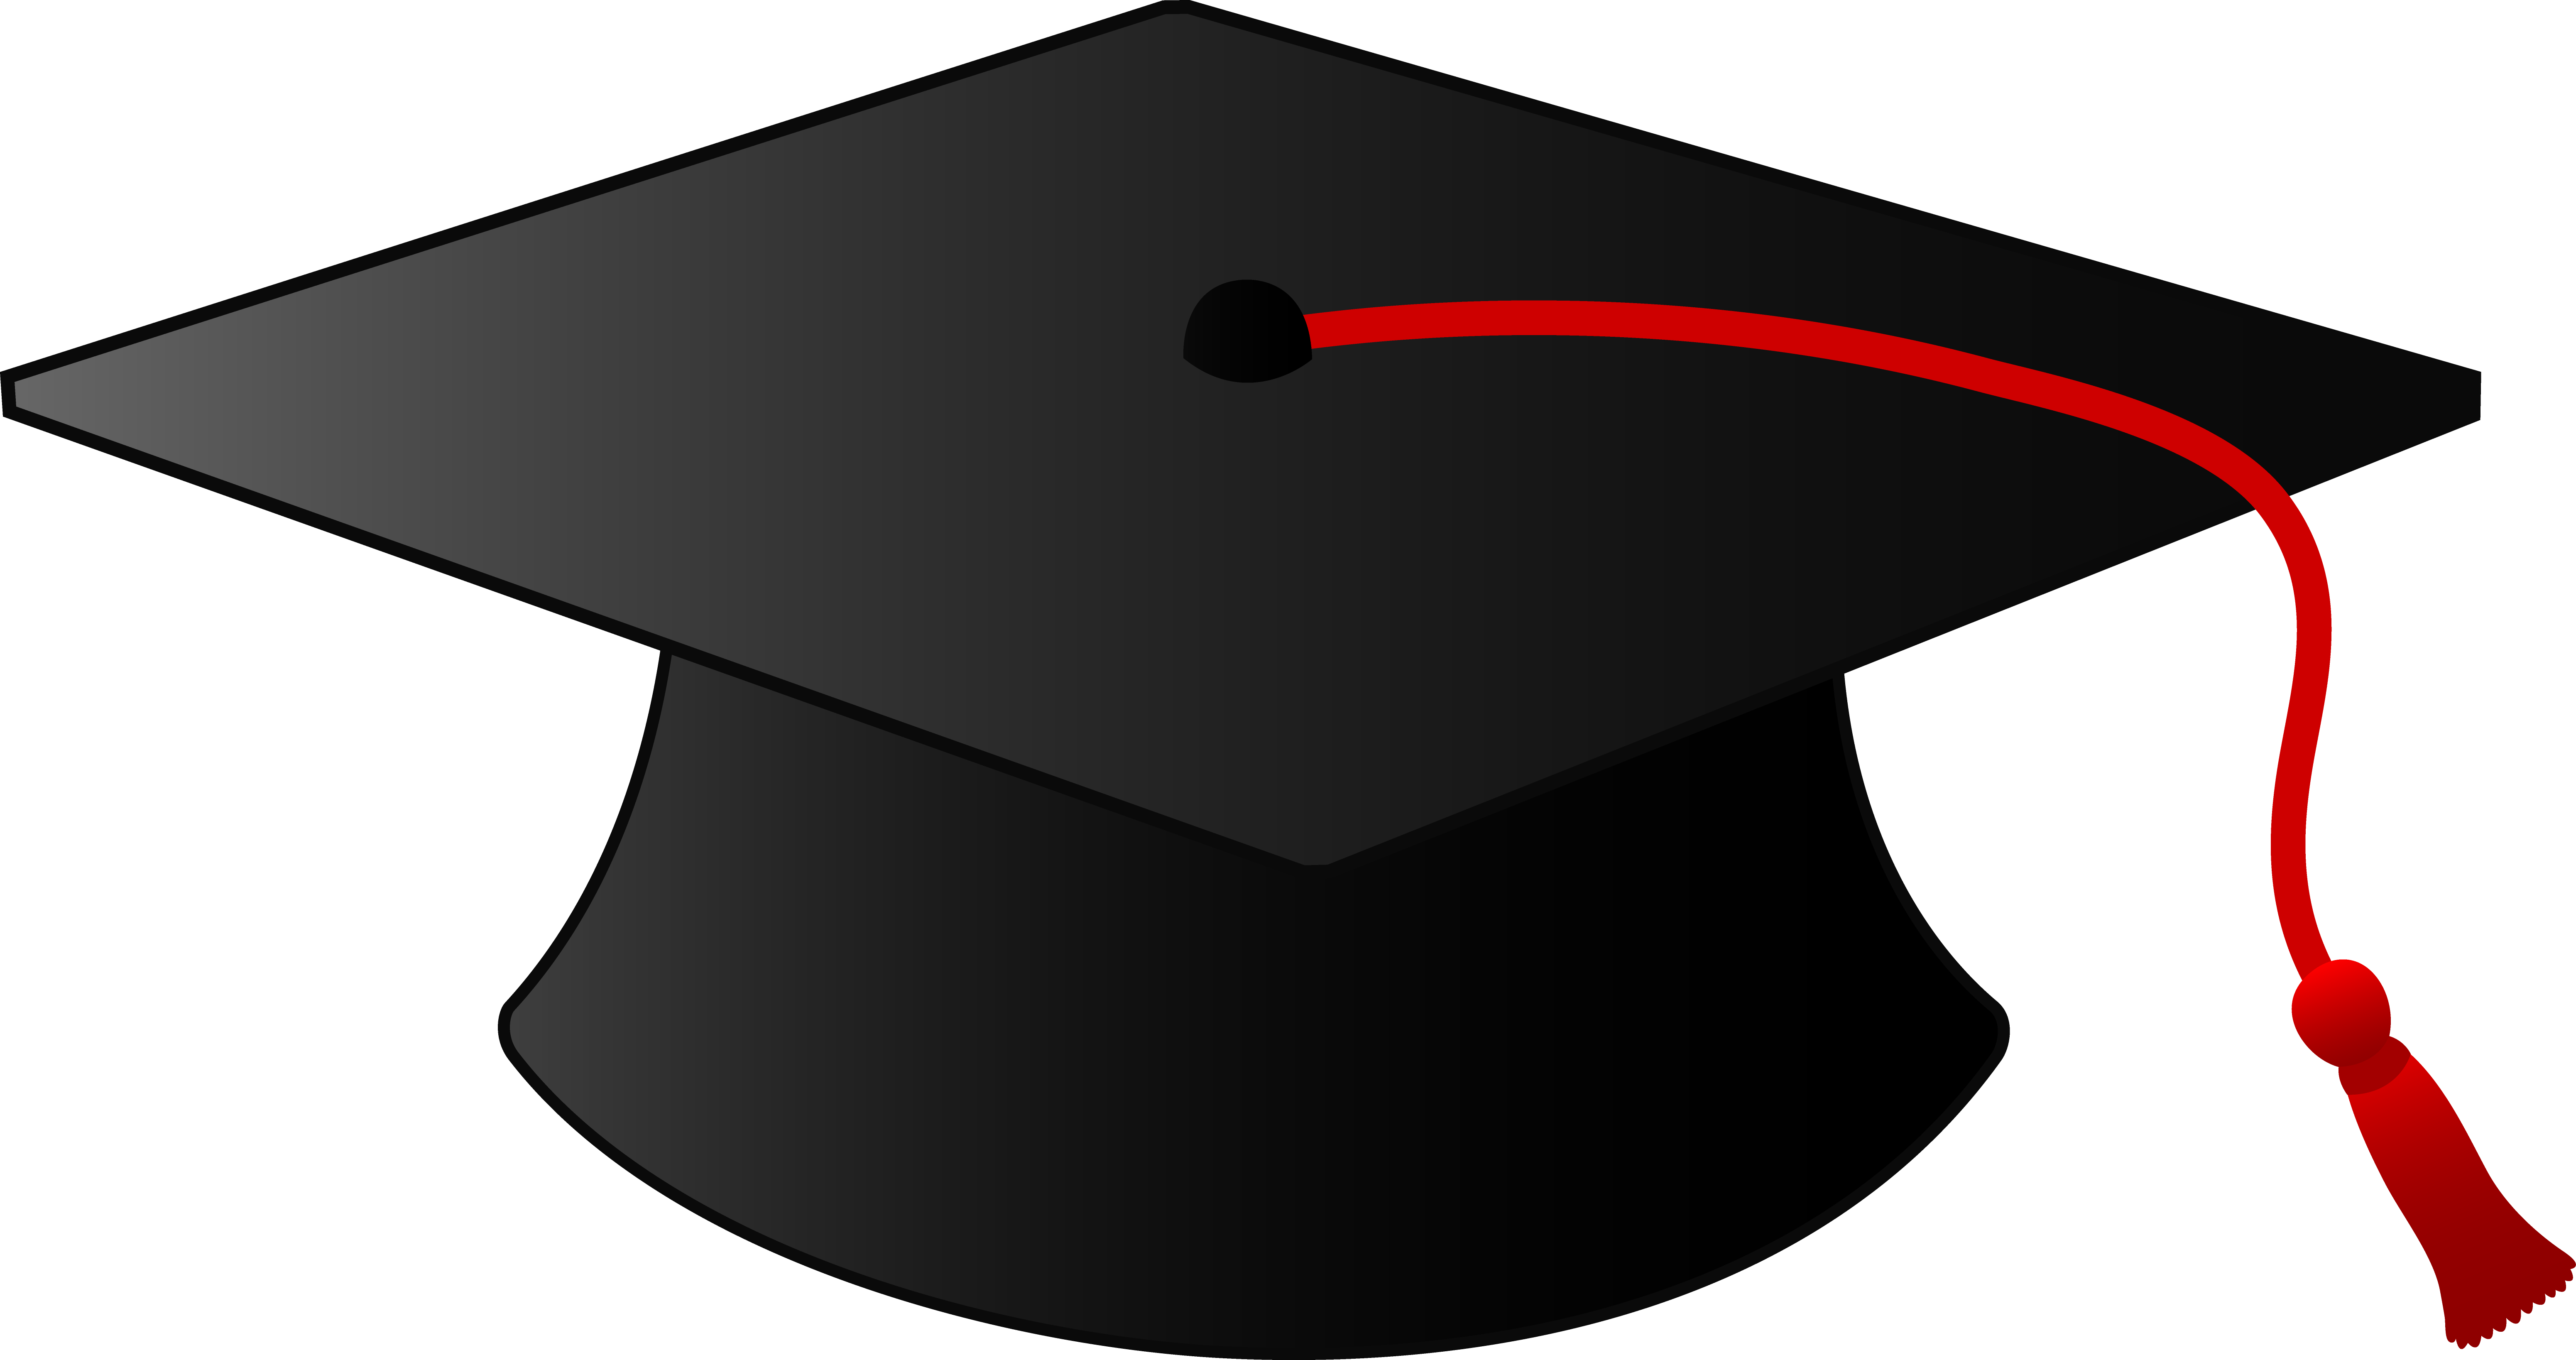 6204x3275 Graduation Hat Graduation Cap Clipart No Background Free